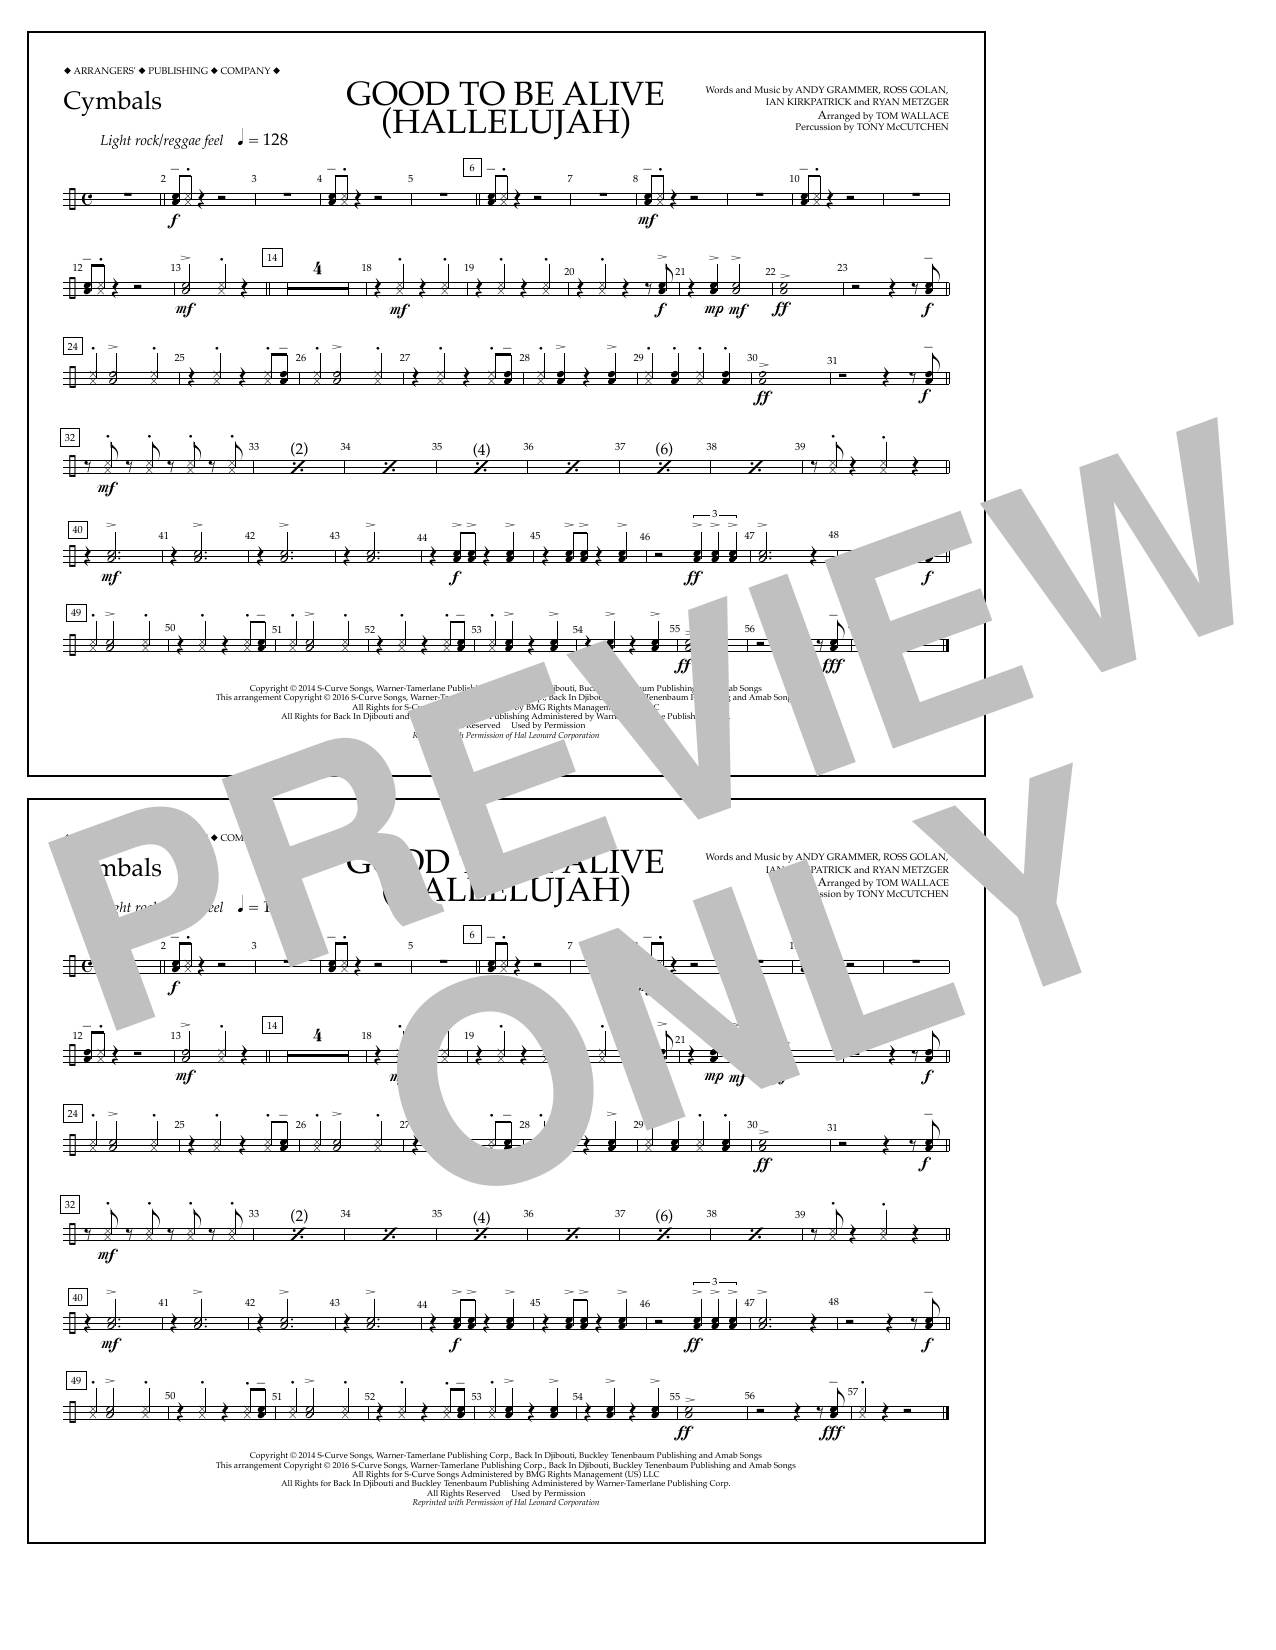 Good to Be Alive (Hallelujah) - Cymbals Sheet Music